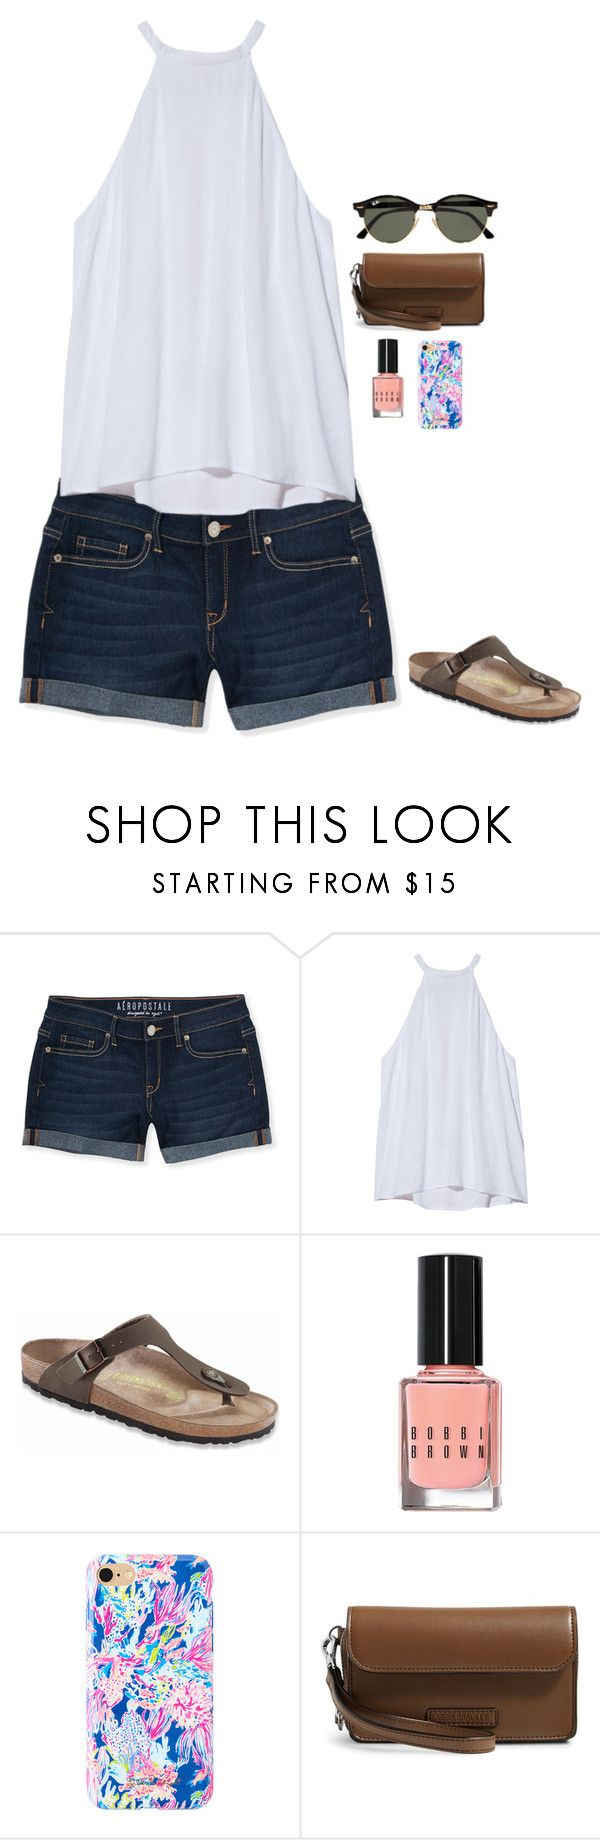 """""""pi"""" by whowho01 on Polyvore featuring Aéropostale, A.L.C., Birkenstock, Bobbi Brown Cosmetics, Lilly Pulitzer, Vera Bradley and Ray-Ban"""